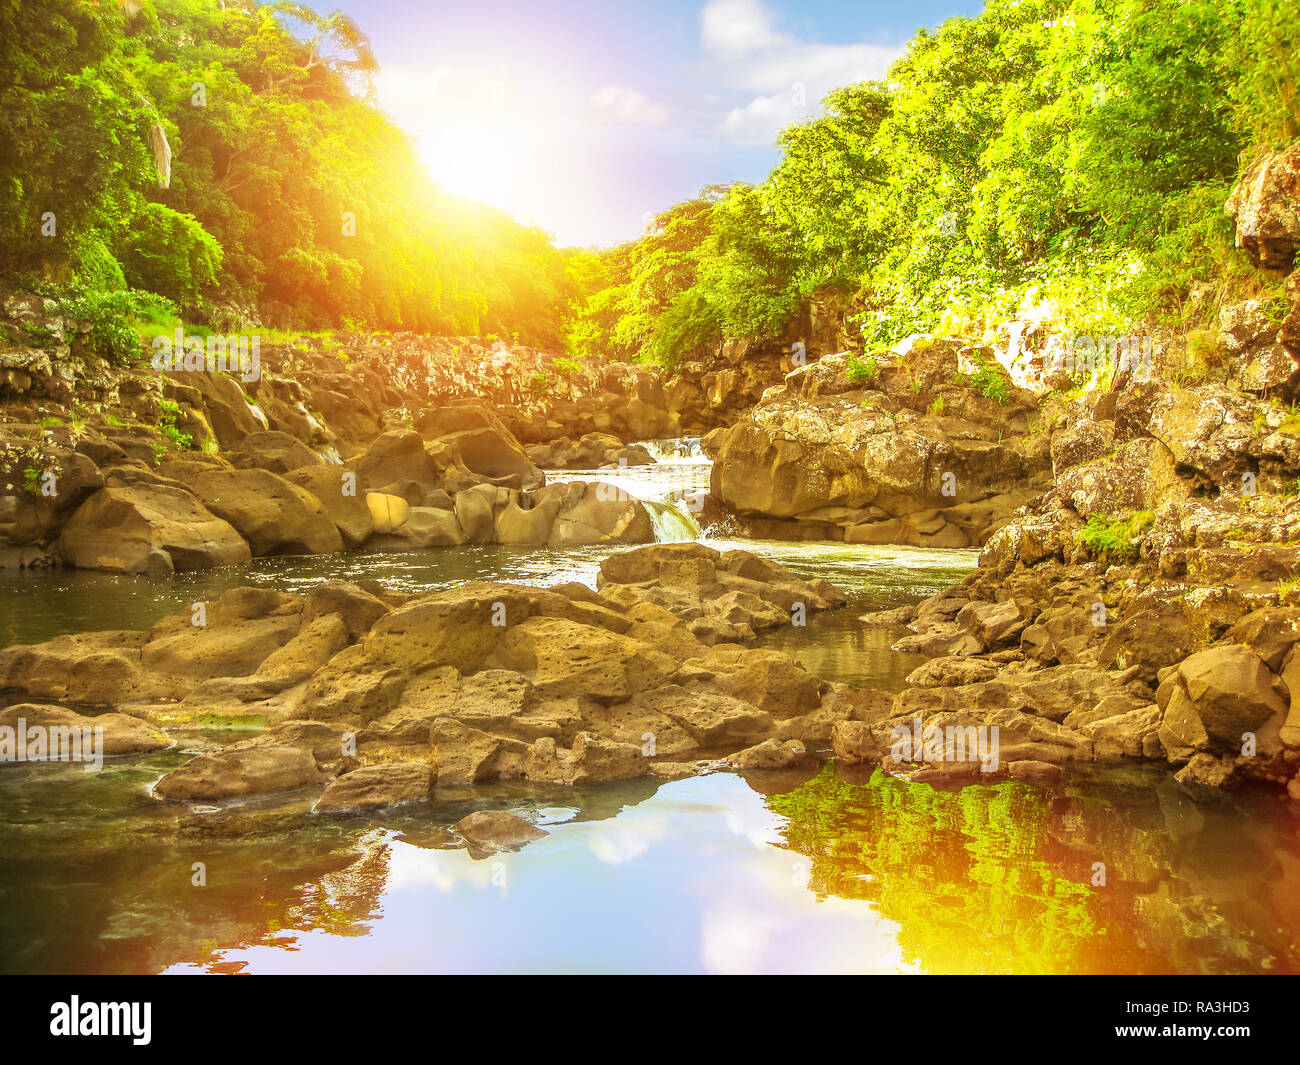 Black River Gorges National Park at sunset light, the largest protected forest of Mauritius, Indian Ocean, Africa. Scenic landscape reflected in the waters of popular travel destination. - Stock Image